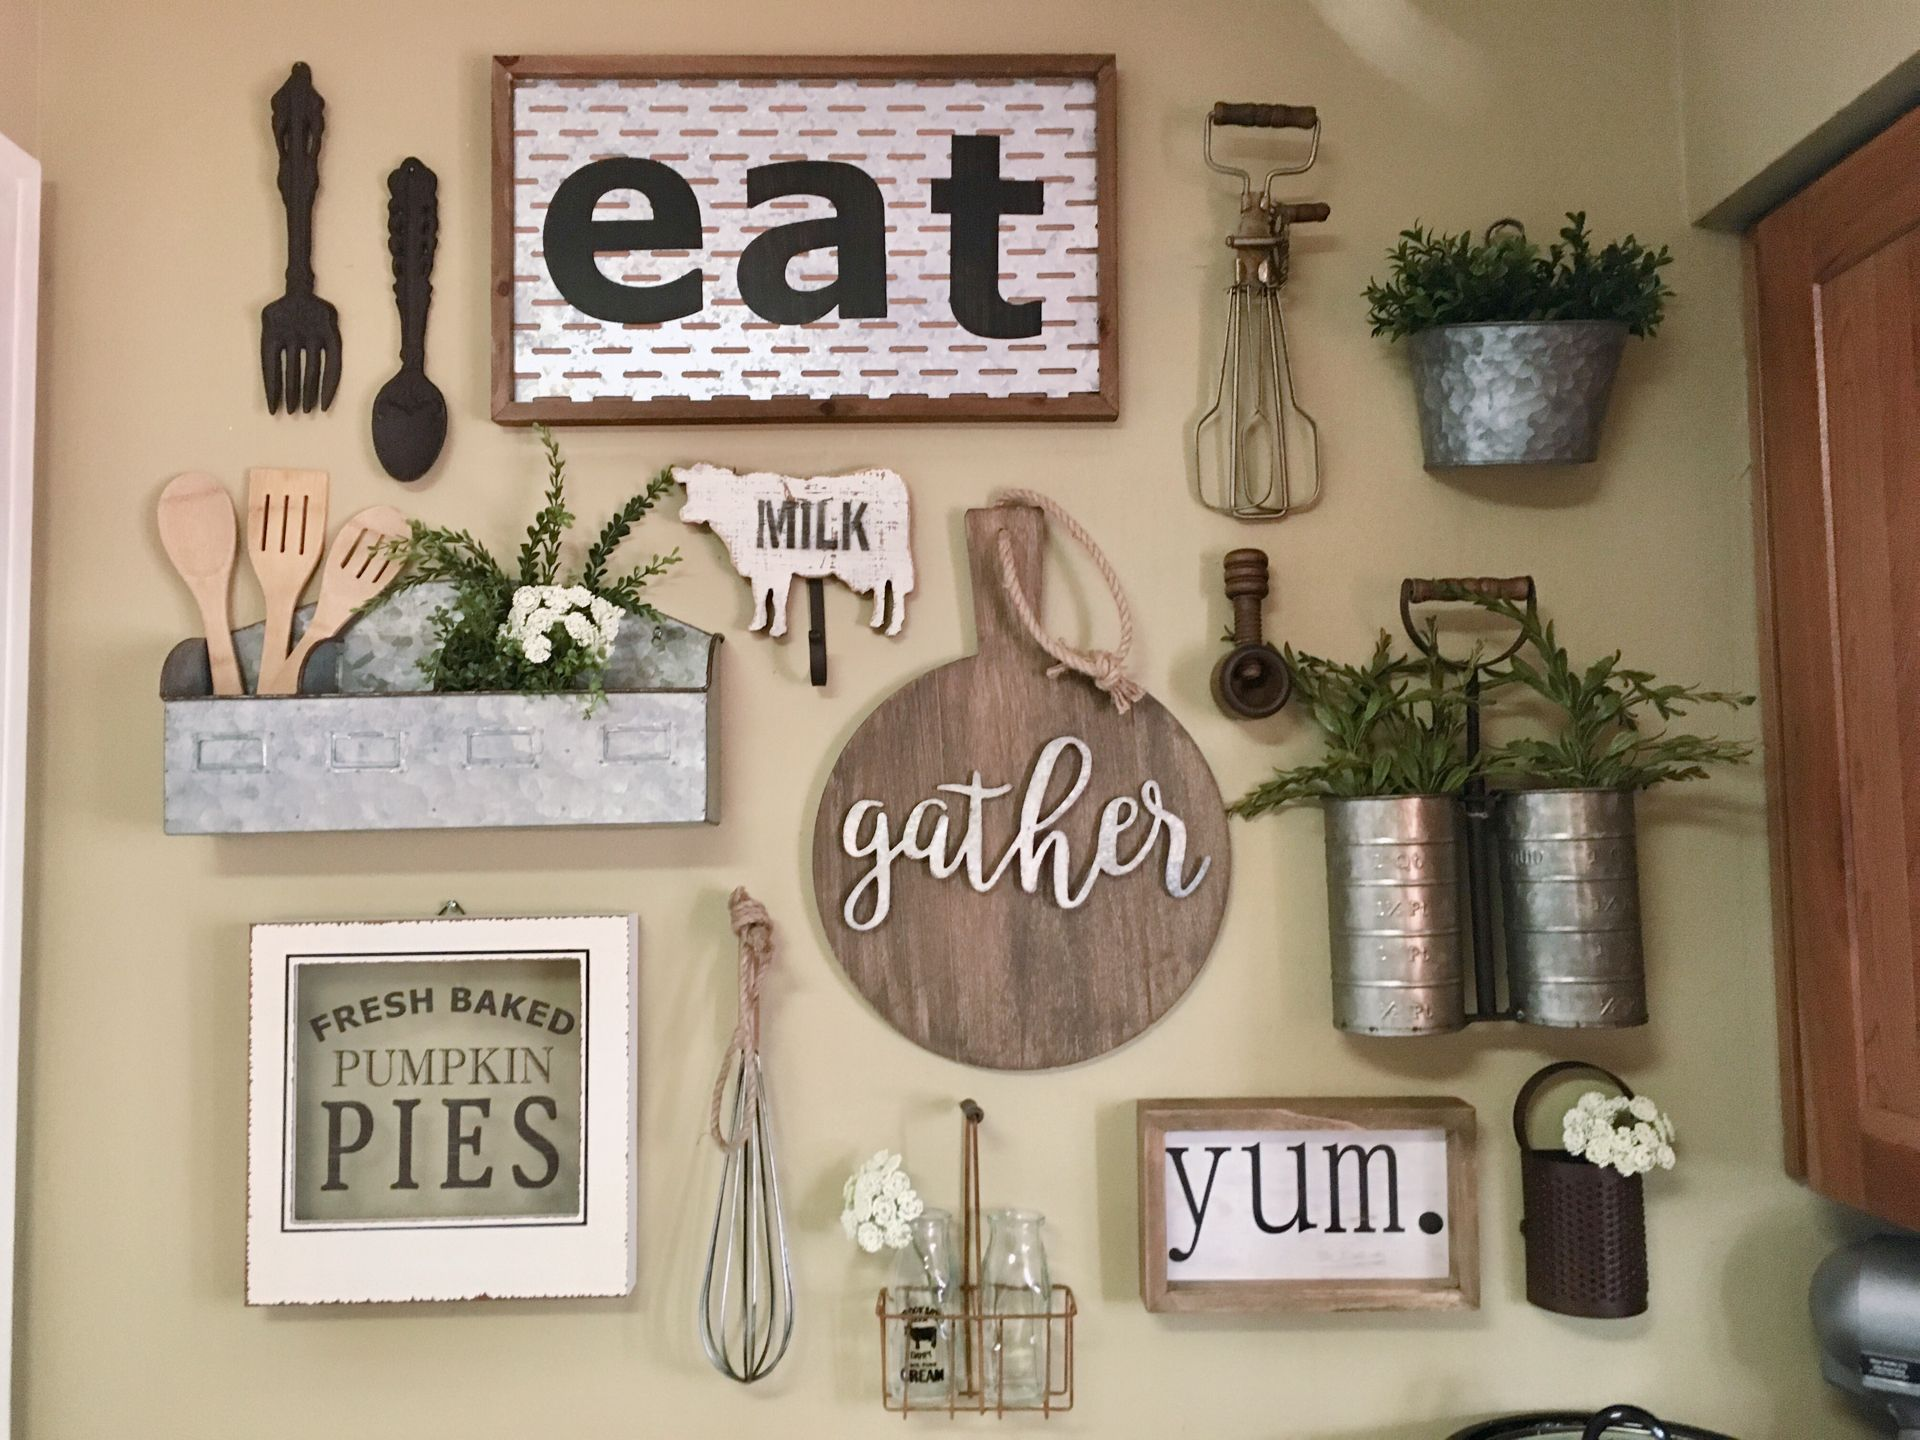 Kitchen Gallery Wall Kitchendecor Gallerywall Farmhouse Decorating Walldecor Hobbylobby Kitchen Gallery Wall Farmhouse Wall Decor Dining Room Wall Decor